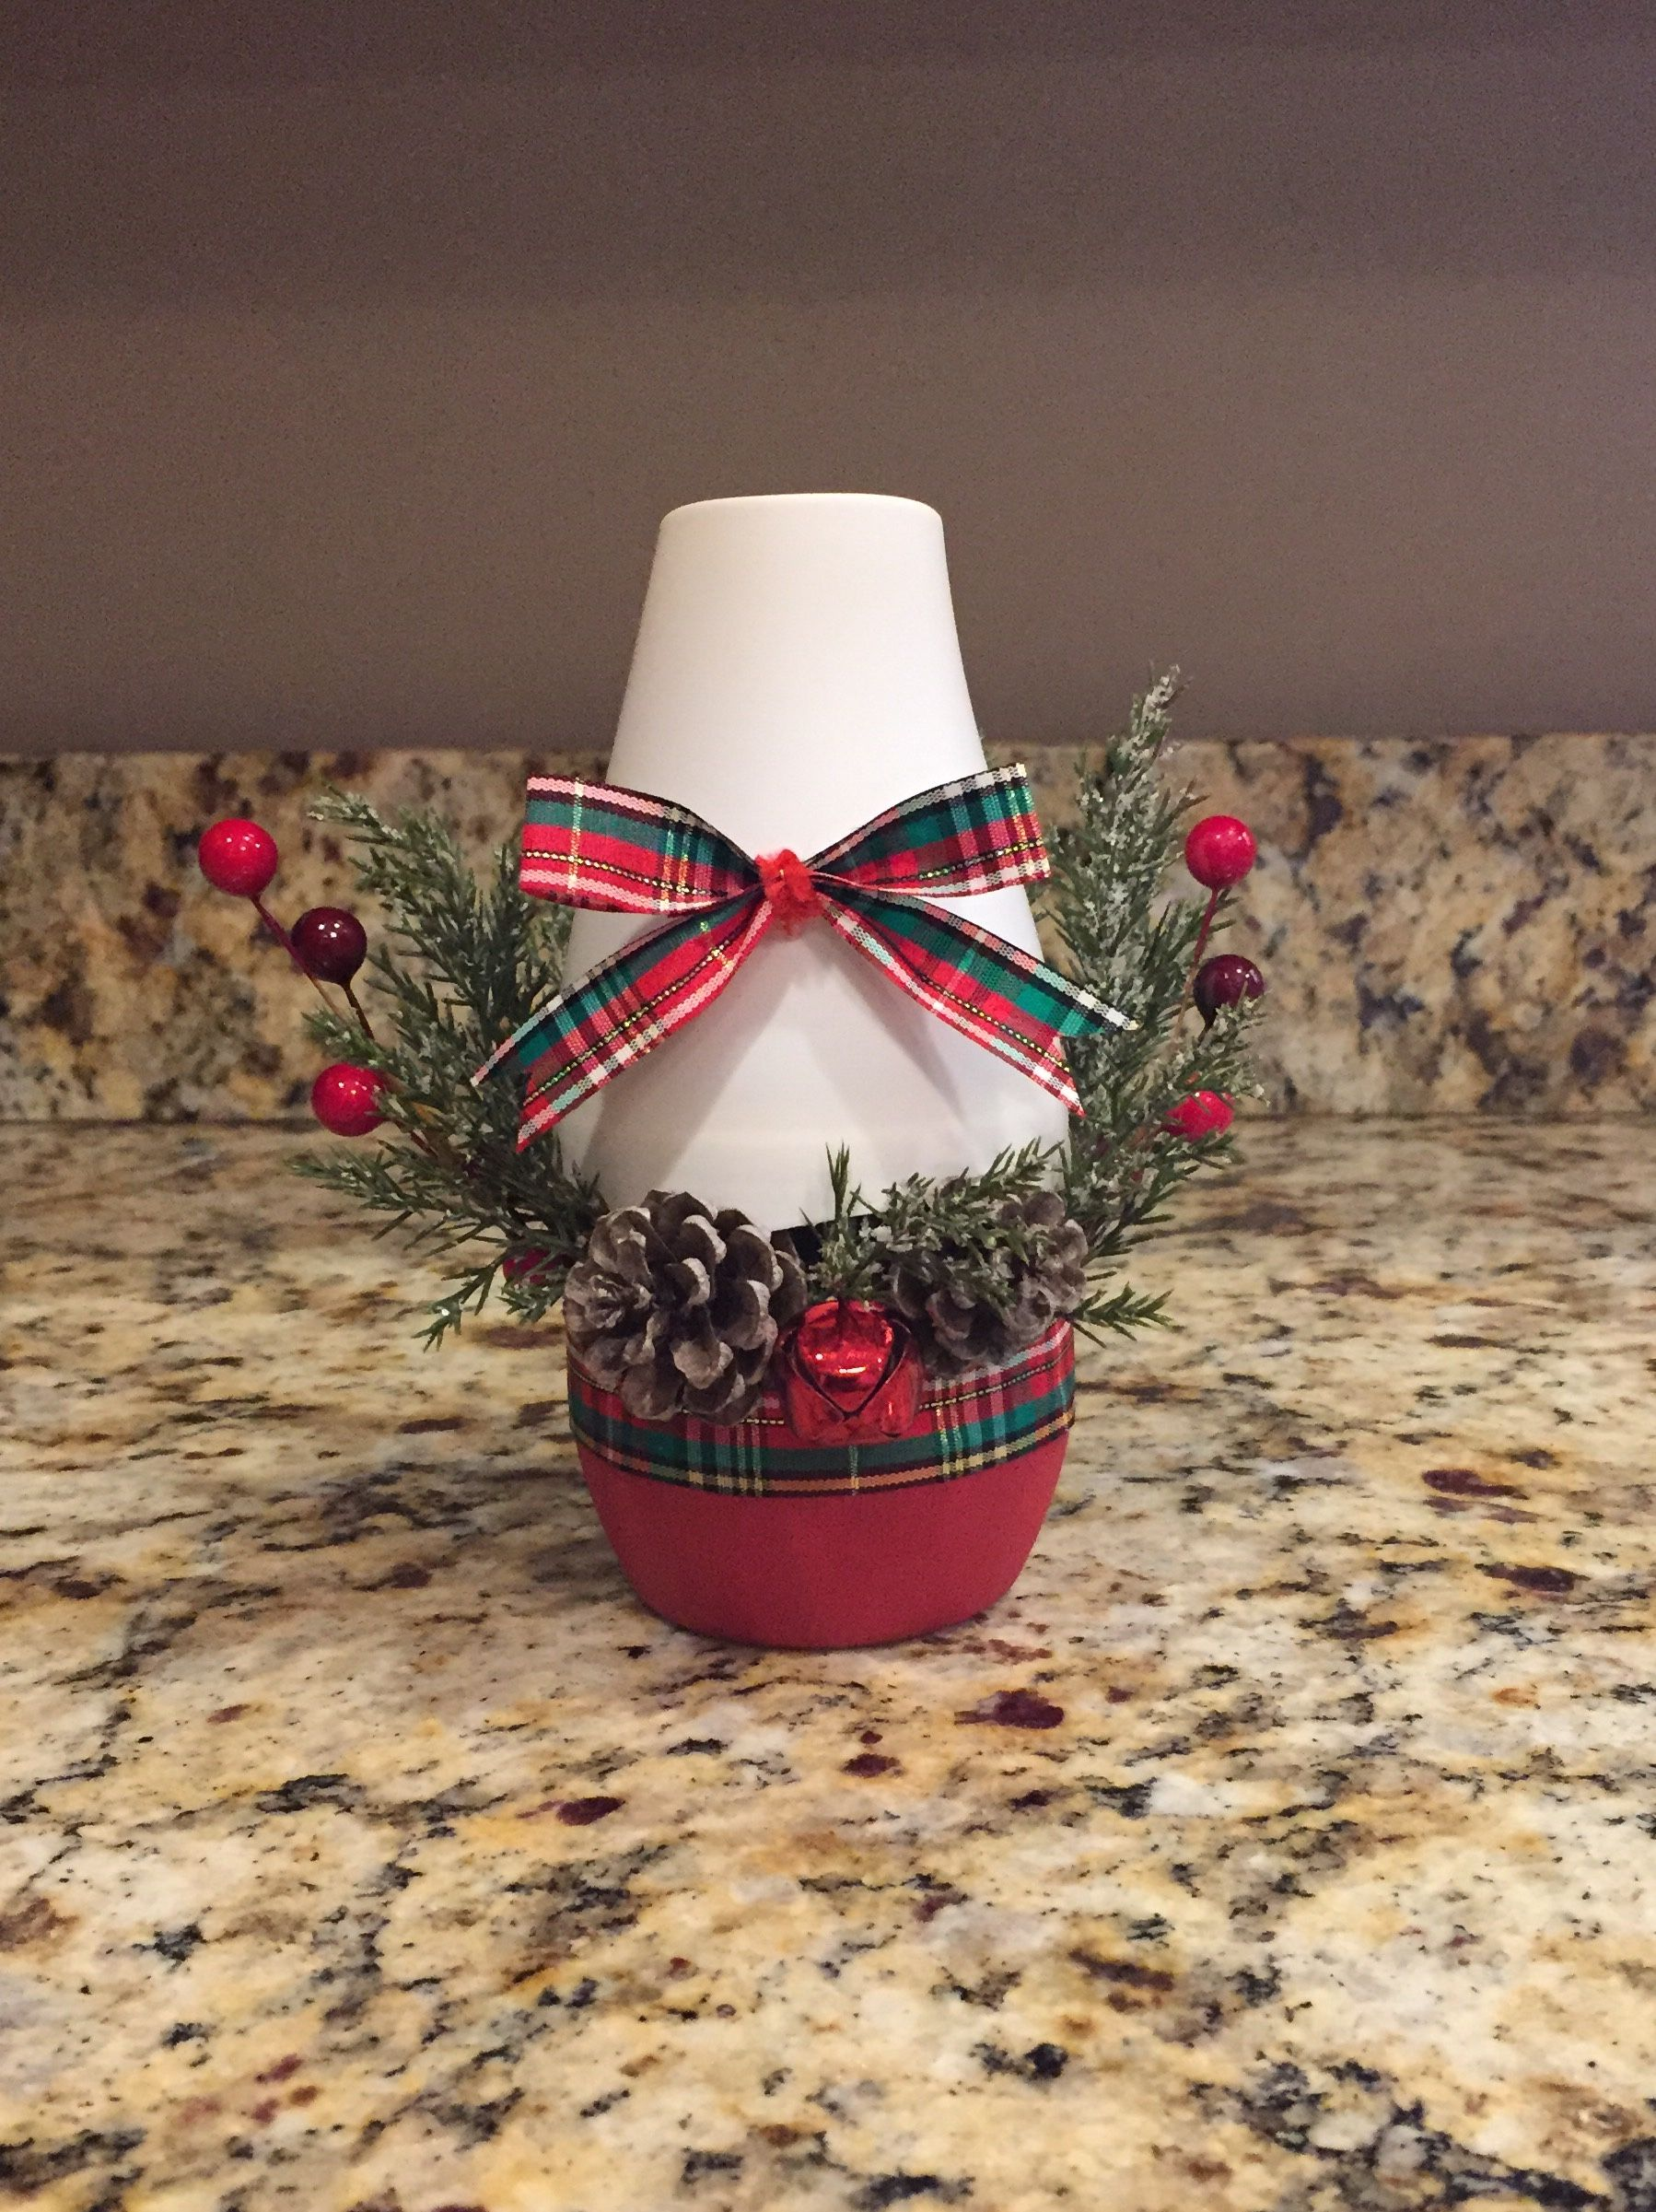 Air freshener Christmas decor, by Pam Waldrop. Christmas